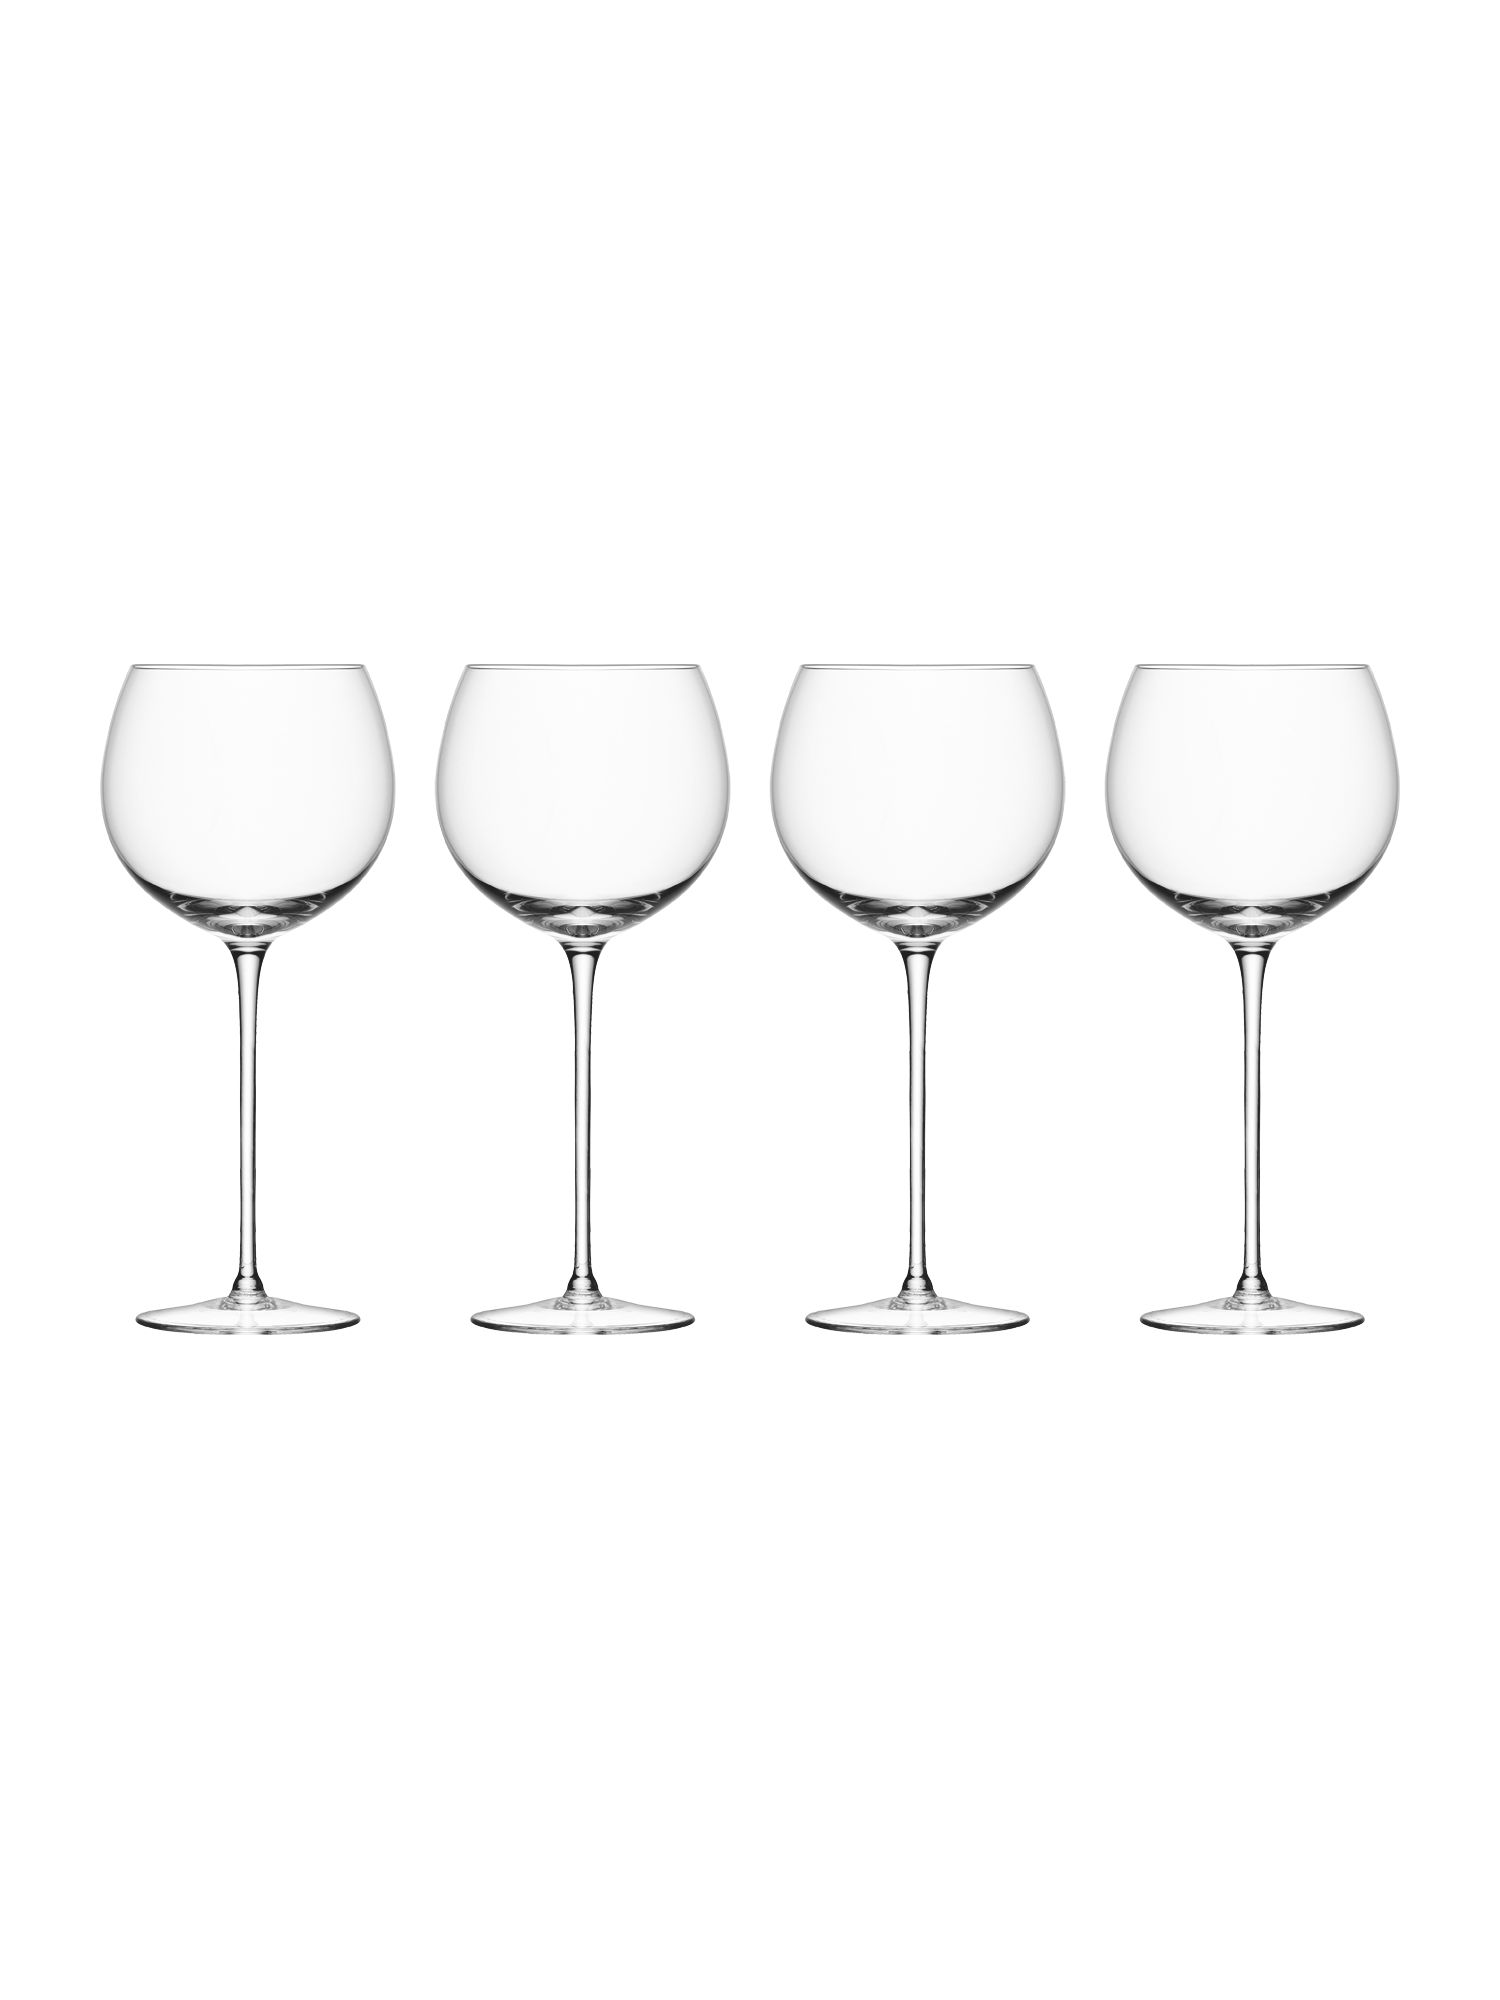 Wine collection balloon wine glasses, set of 4